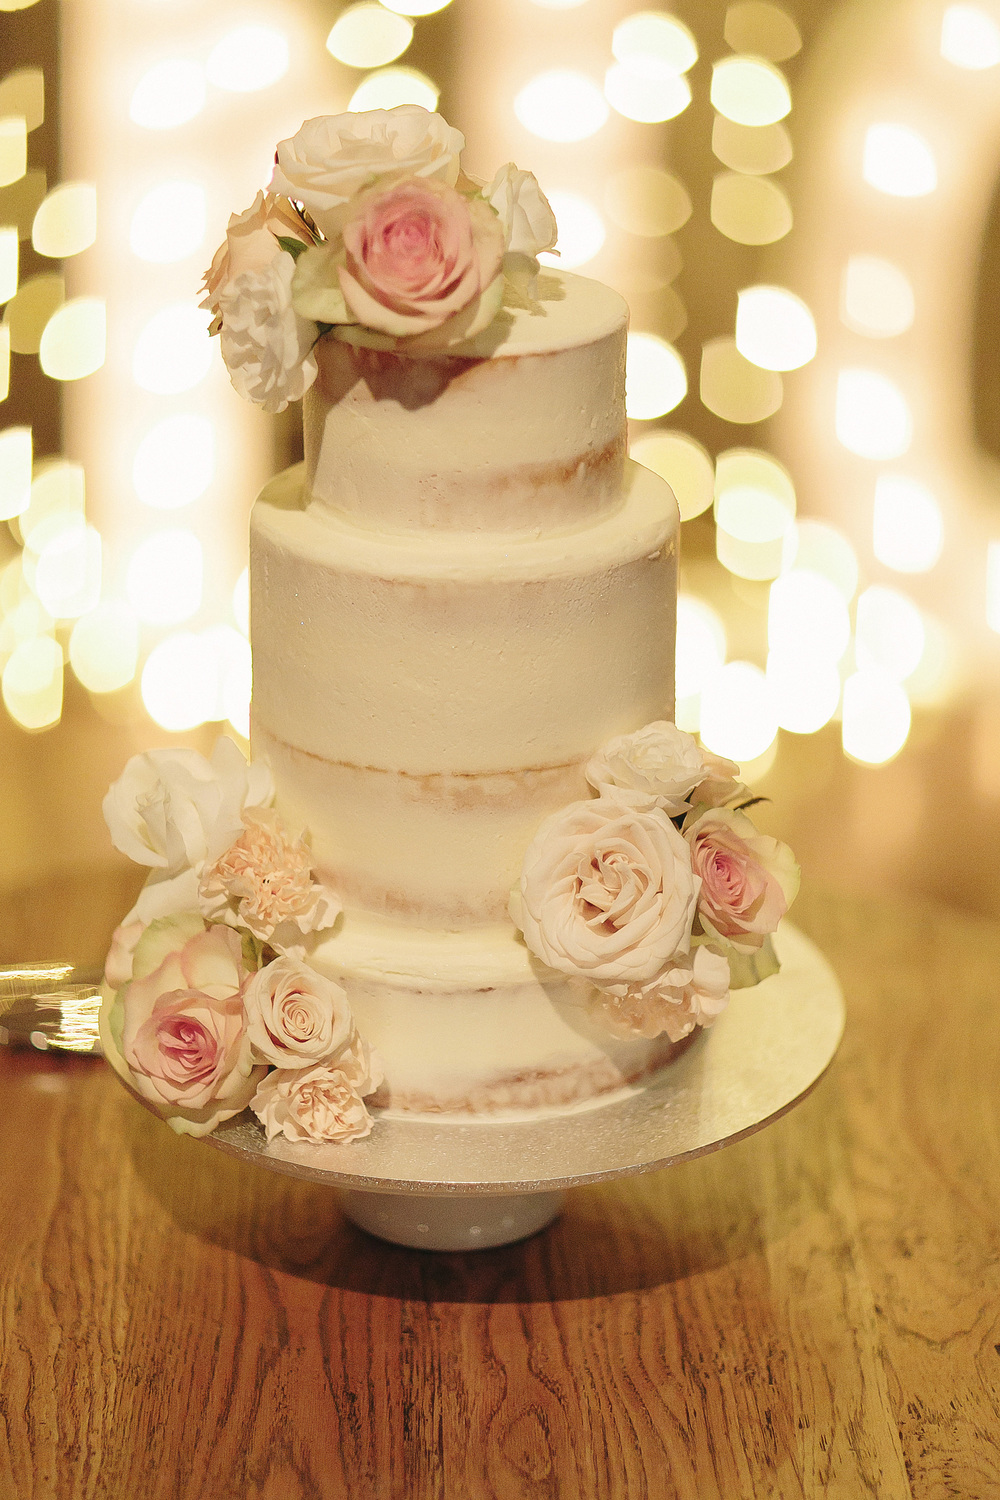 Three barely frosted tiers, and finished with fresh blooms - simply stunning!  Photo:  Juddrick Photography